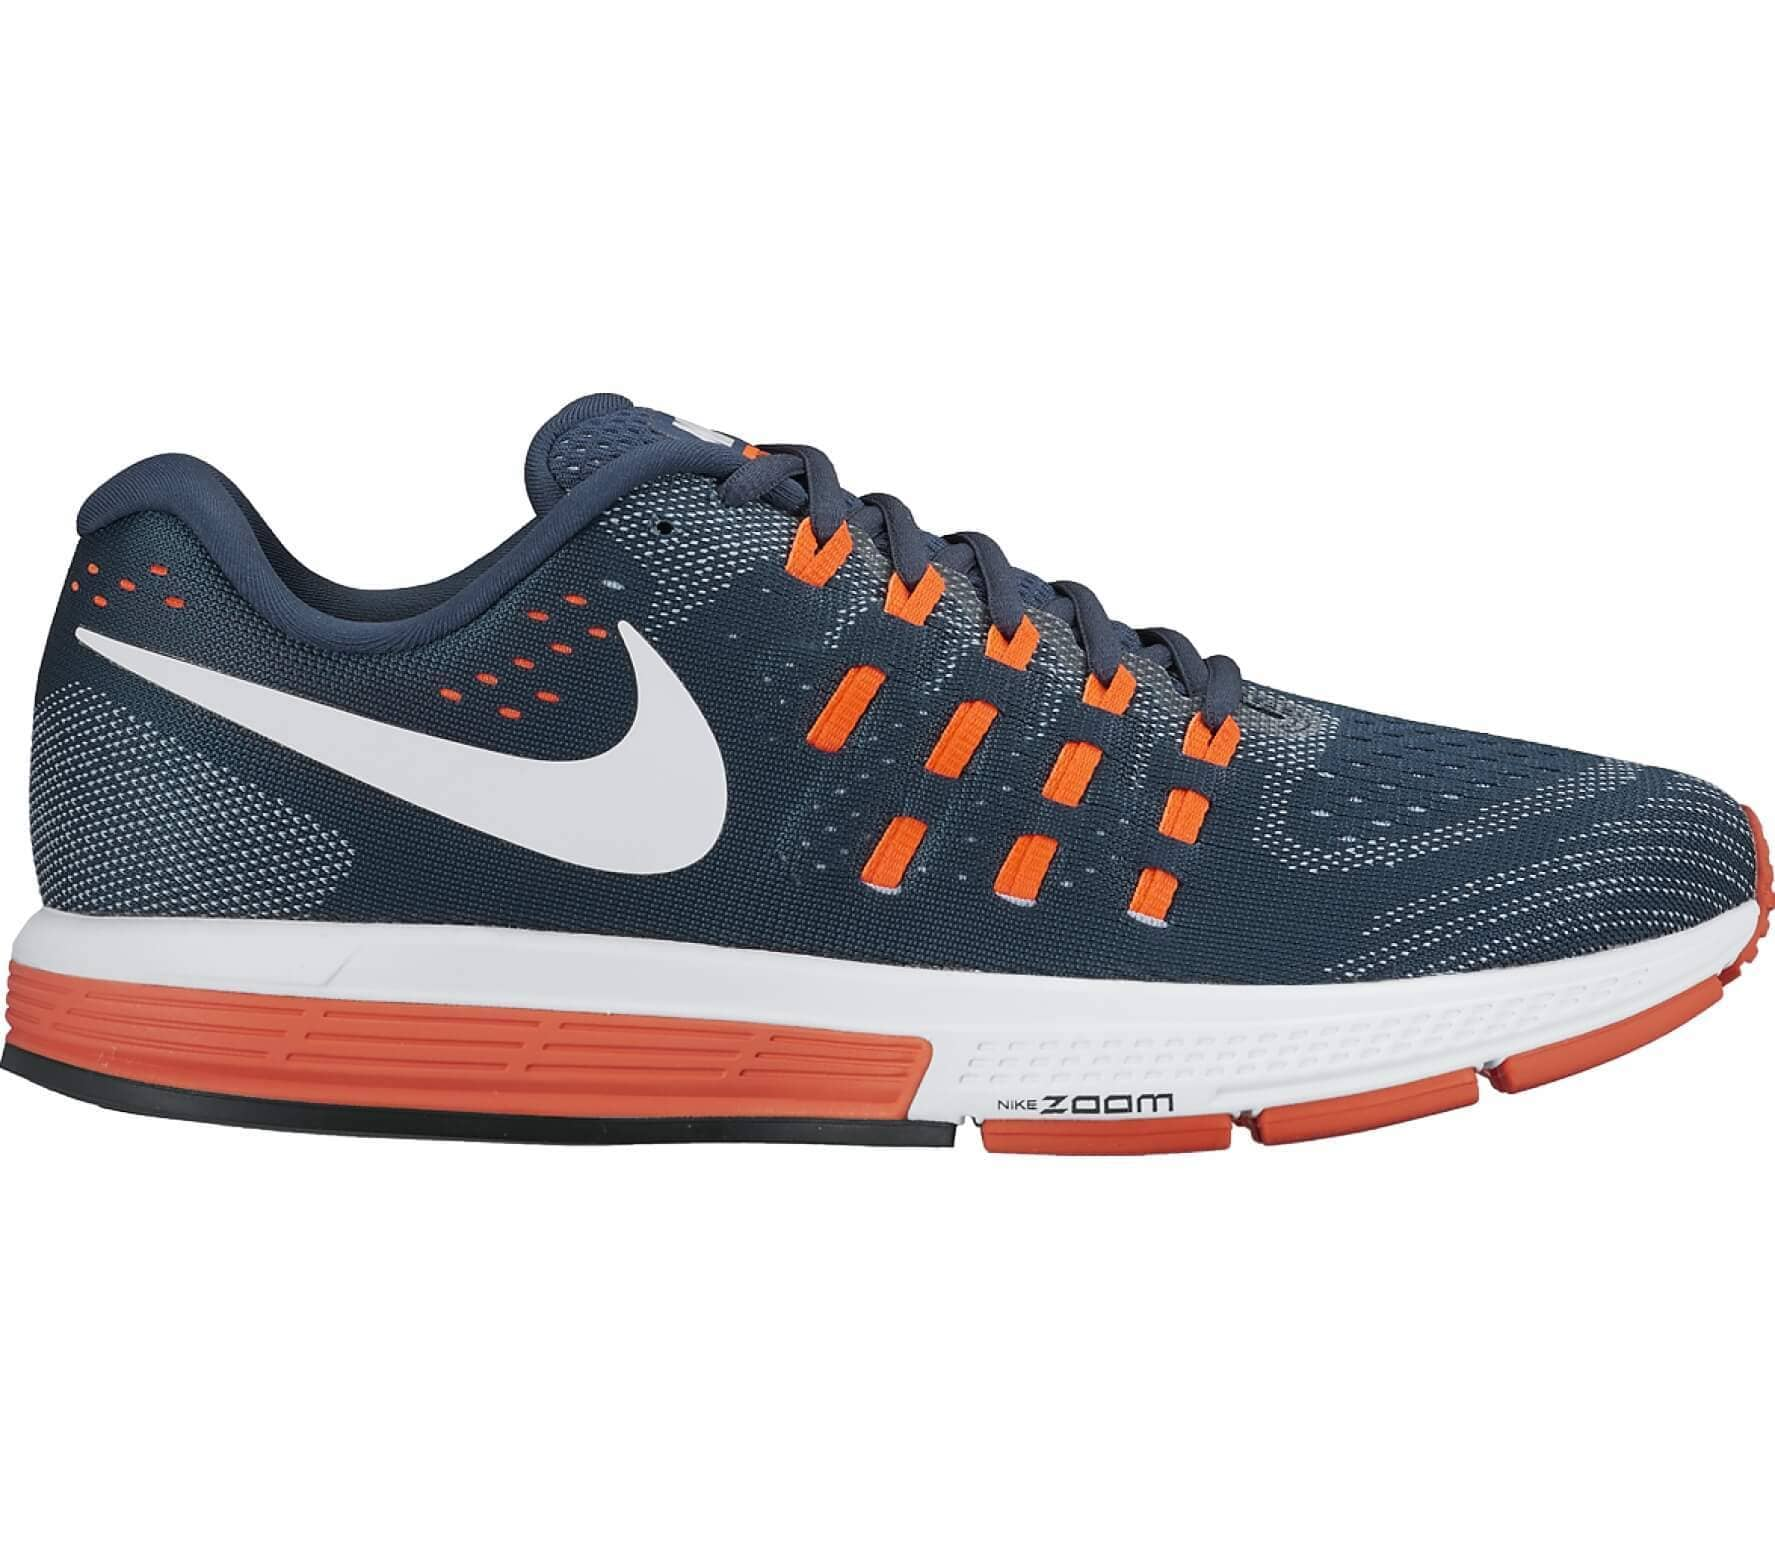 official photos ee382 a919f Nike - Air Zoom Vomero 11 Hommes chaussure de course (gris Orange)